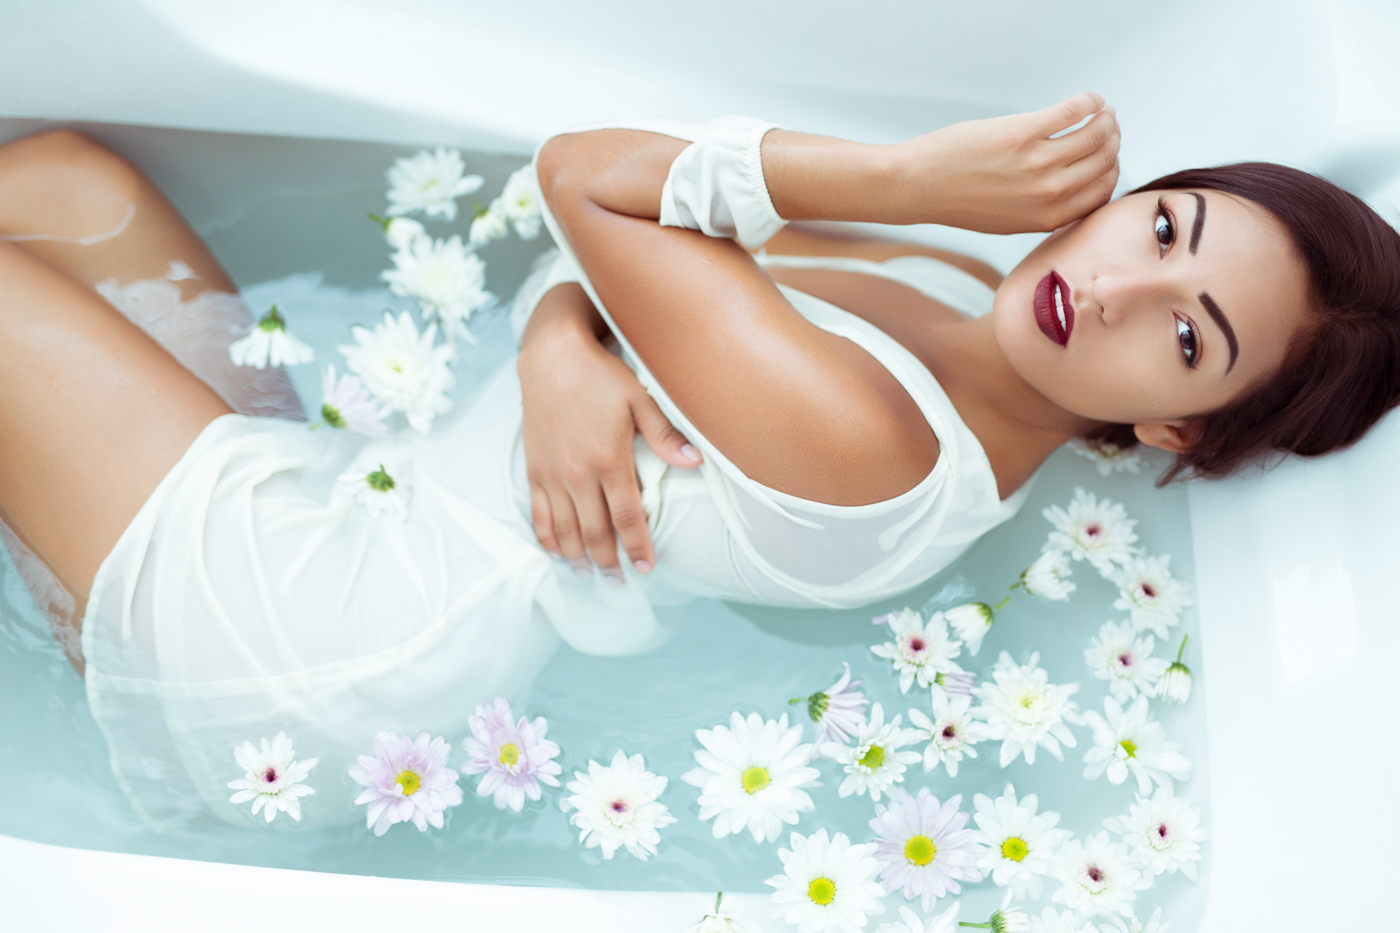 bathtub-photoshoot-at-my-studio-ksenia-pro-photography-1